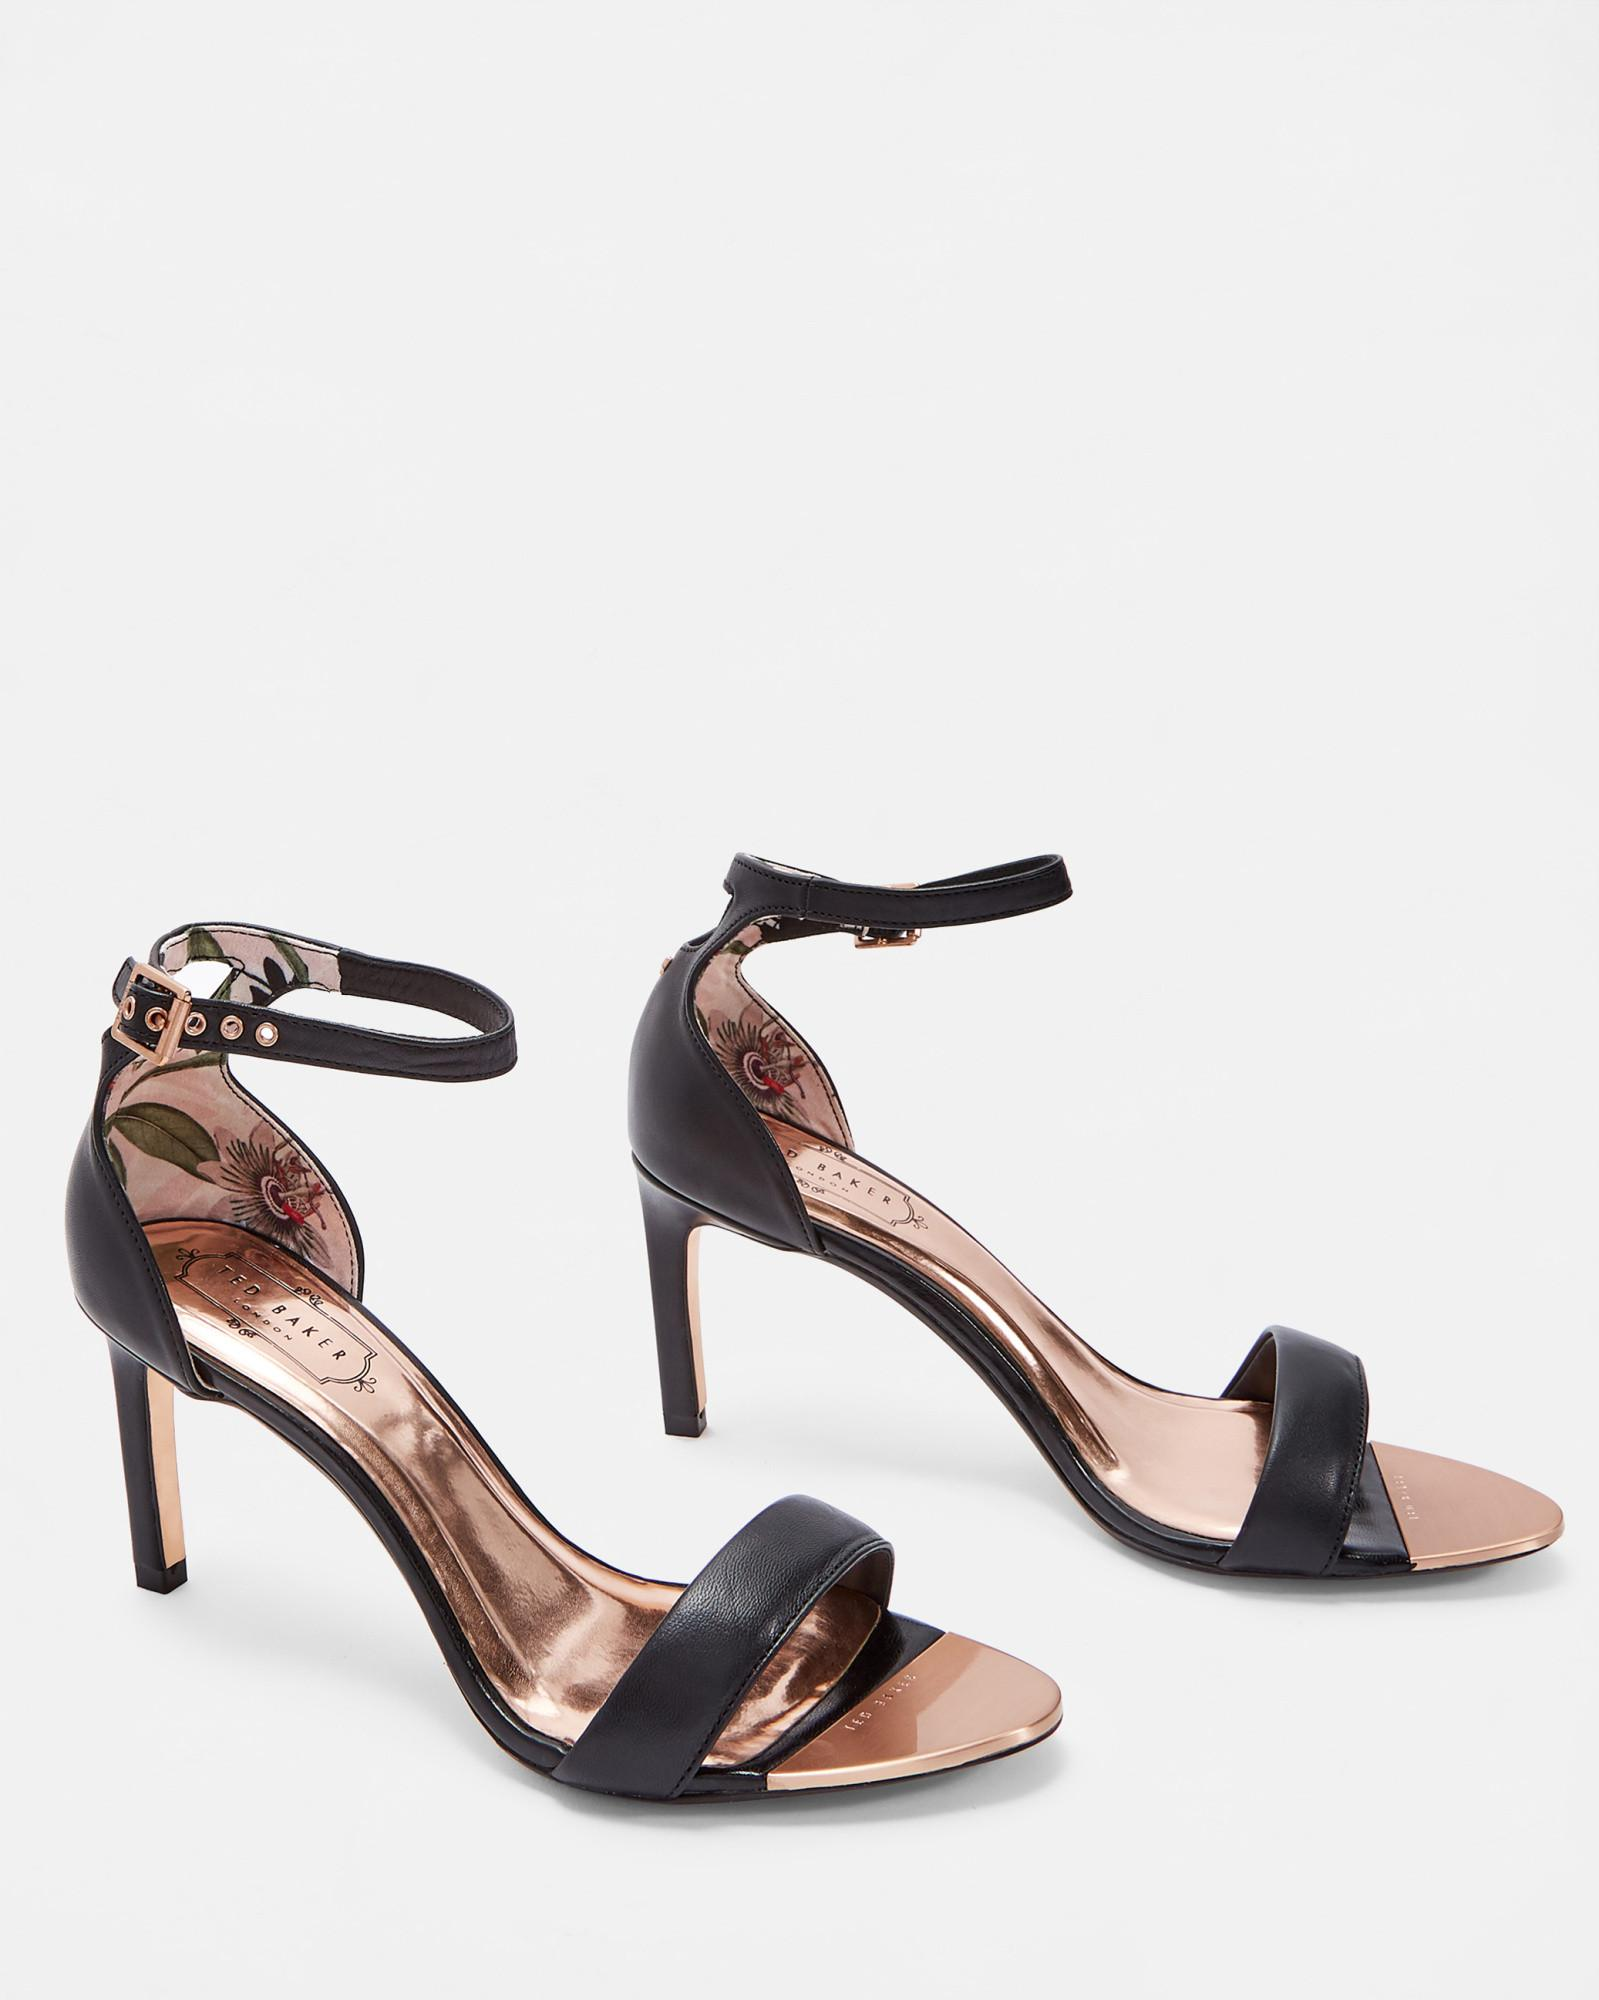 48959006b Ted Baker Straight Heel Sandals in Black - Lyst